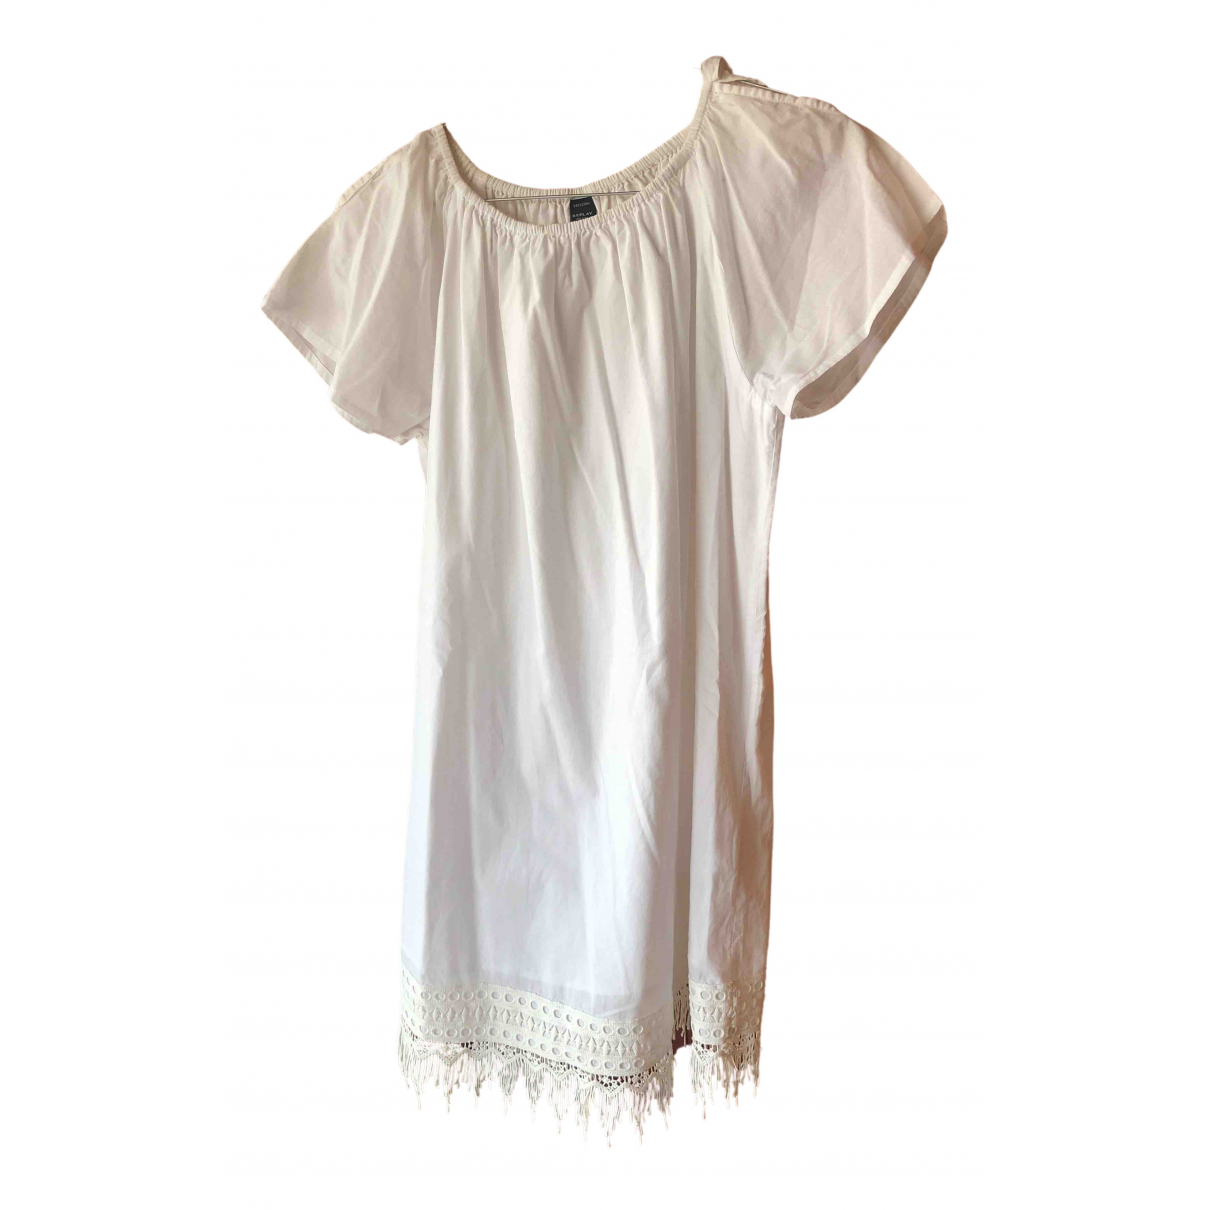 Replay N White Cotton dress for Kids 12 years - XS UK